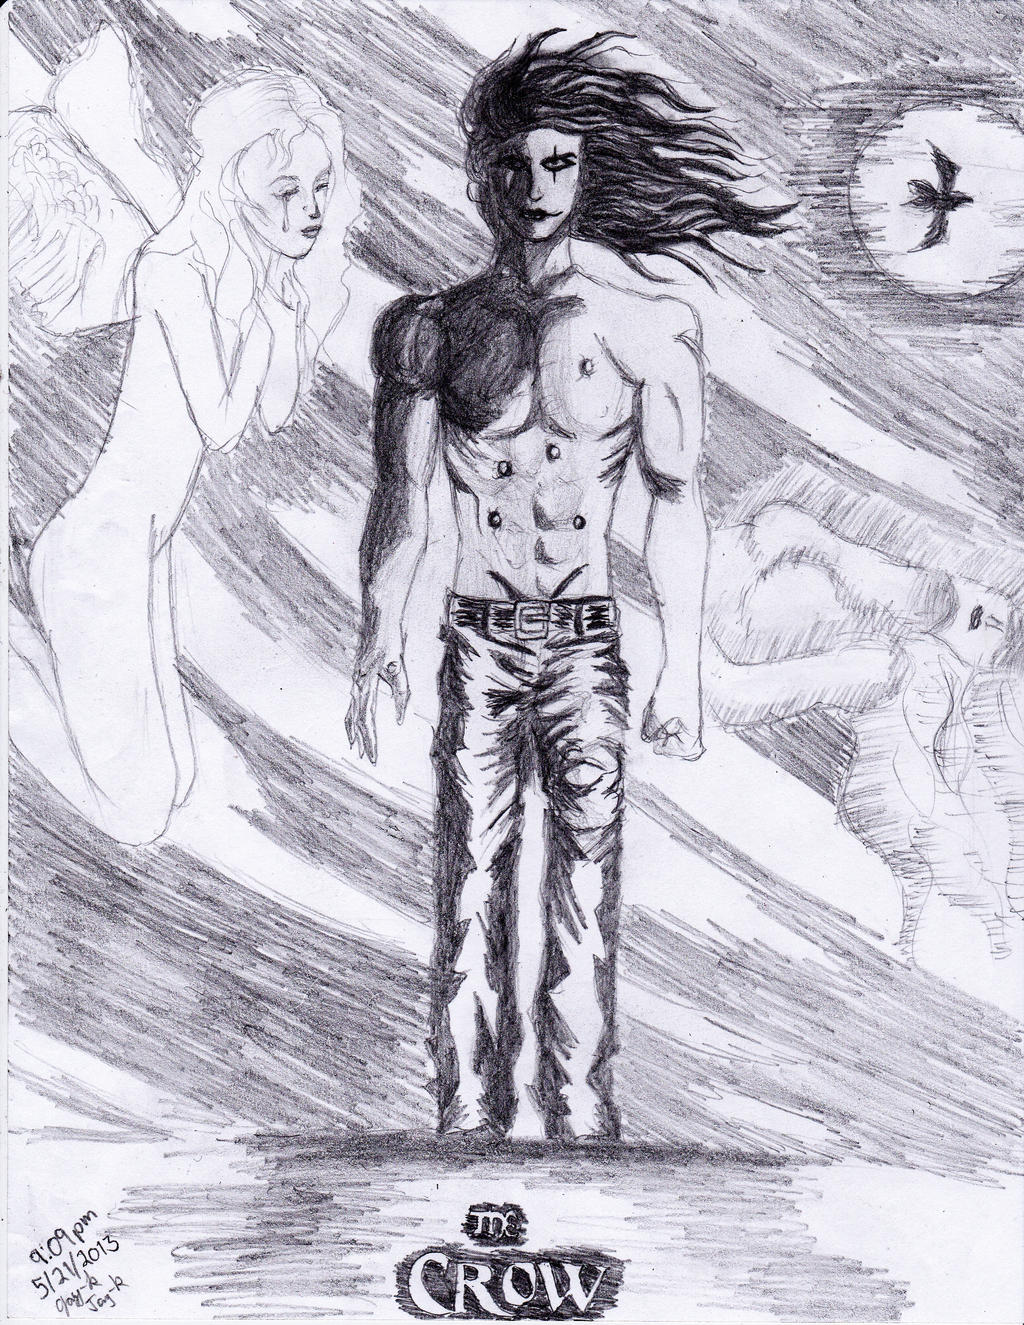 The Crow Eric Draven with Shelly angel (Pencil) by AplG7